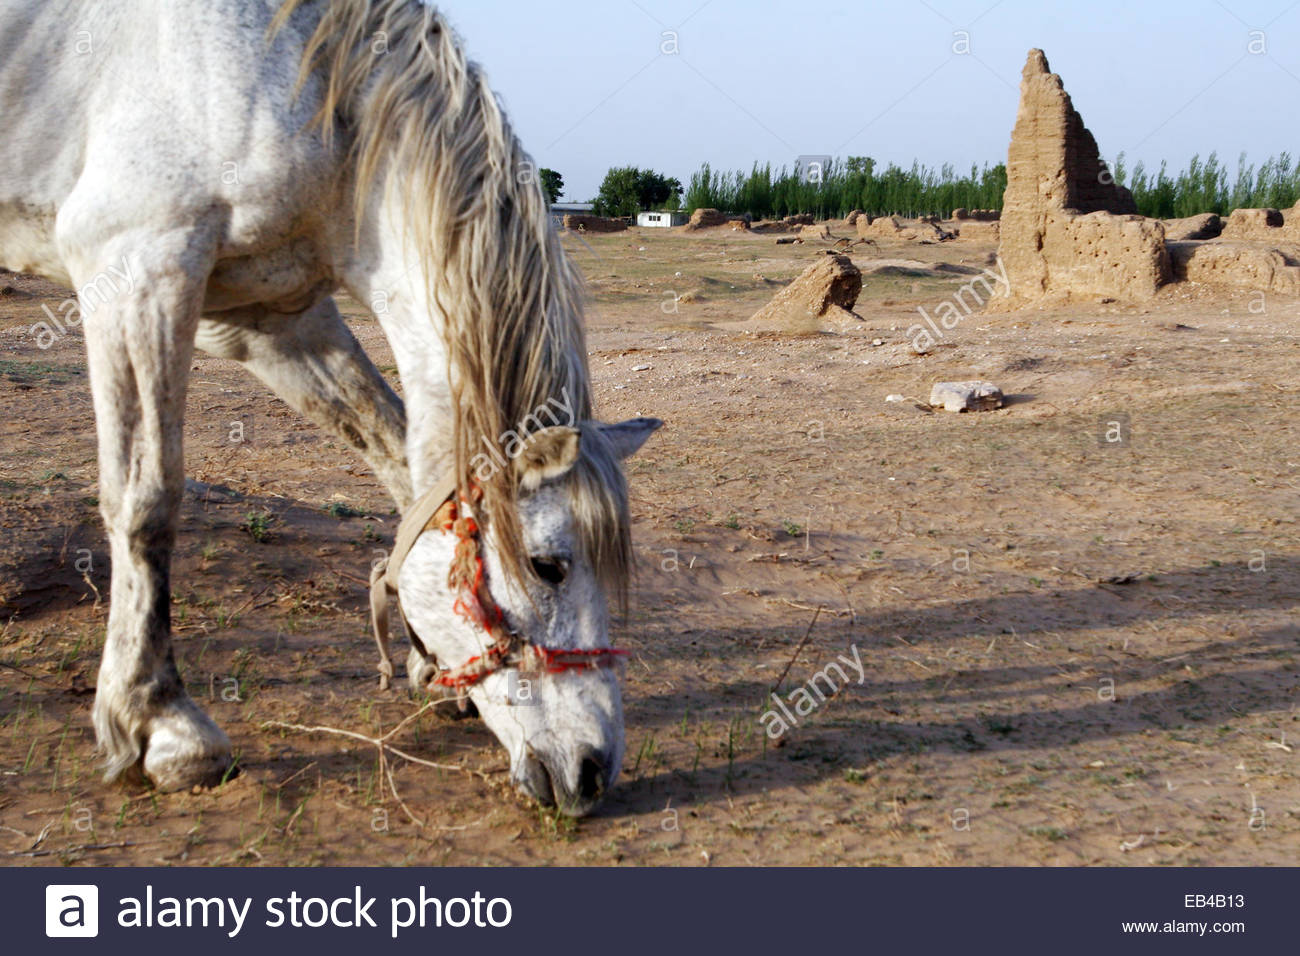 A horse grazing on sparse vegetation on dry land in China's Hebei Province. - Stock Image